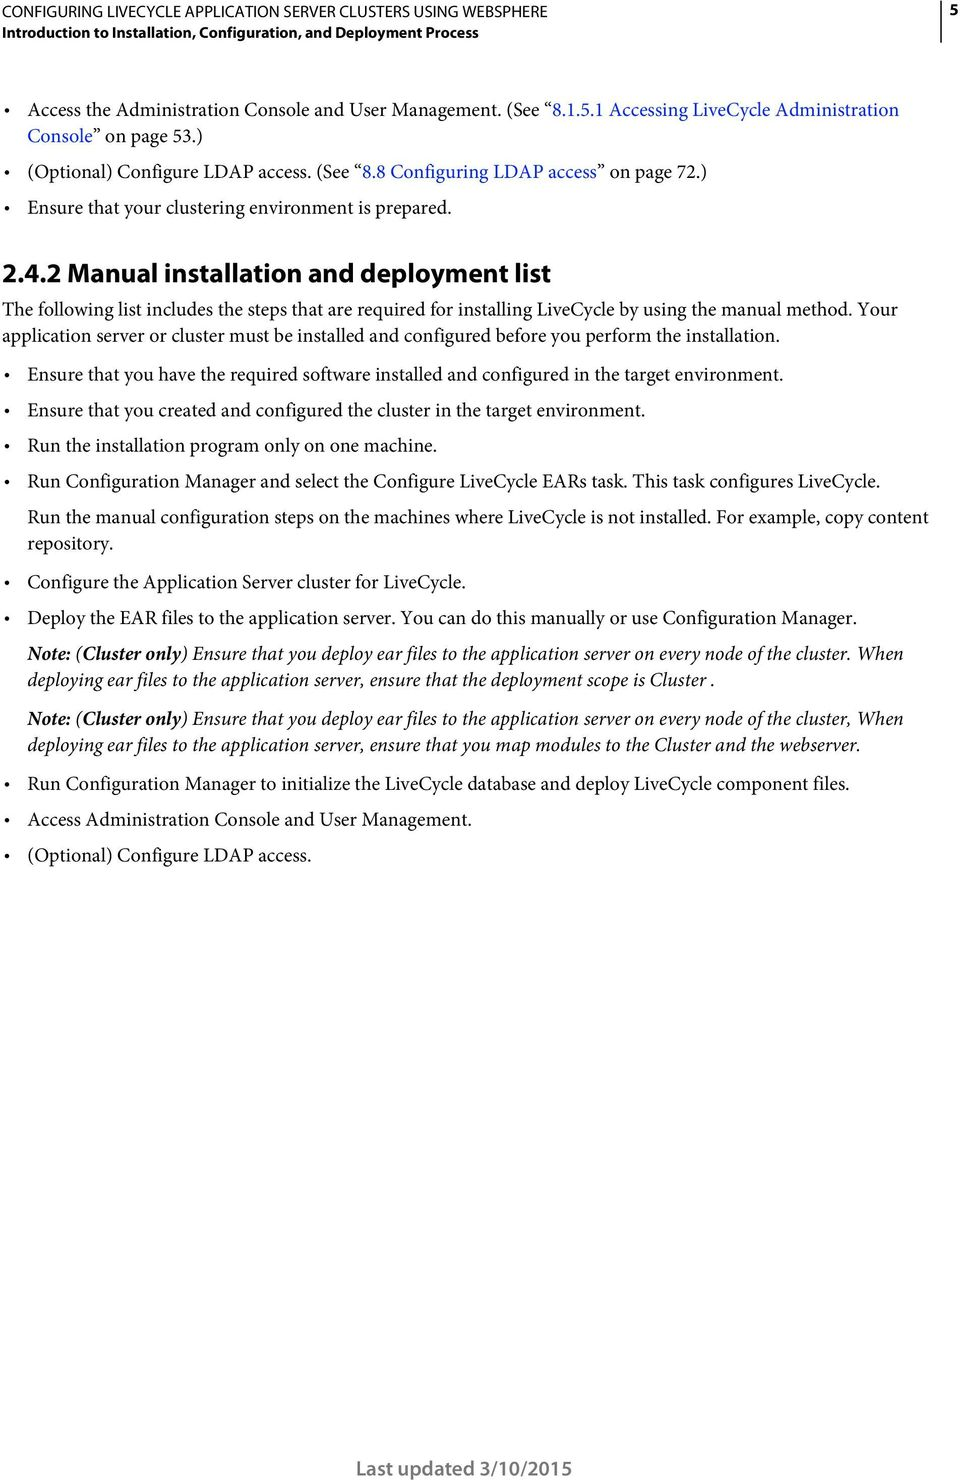 2 Manual installation and deployment list The following list includes the steps that are required for installing LiveCycle by using the manual method.